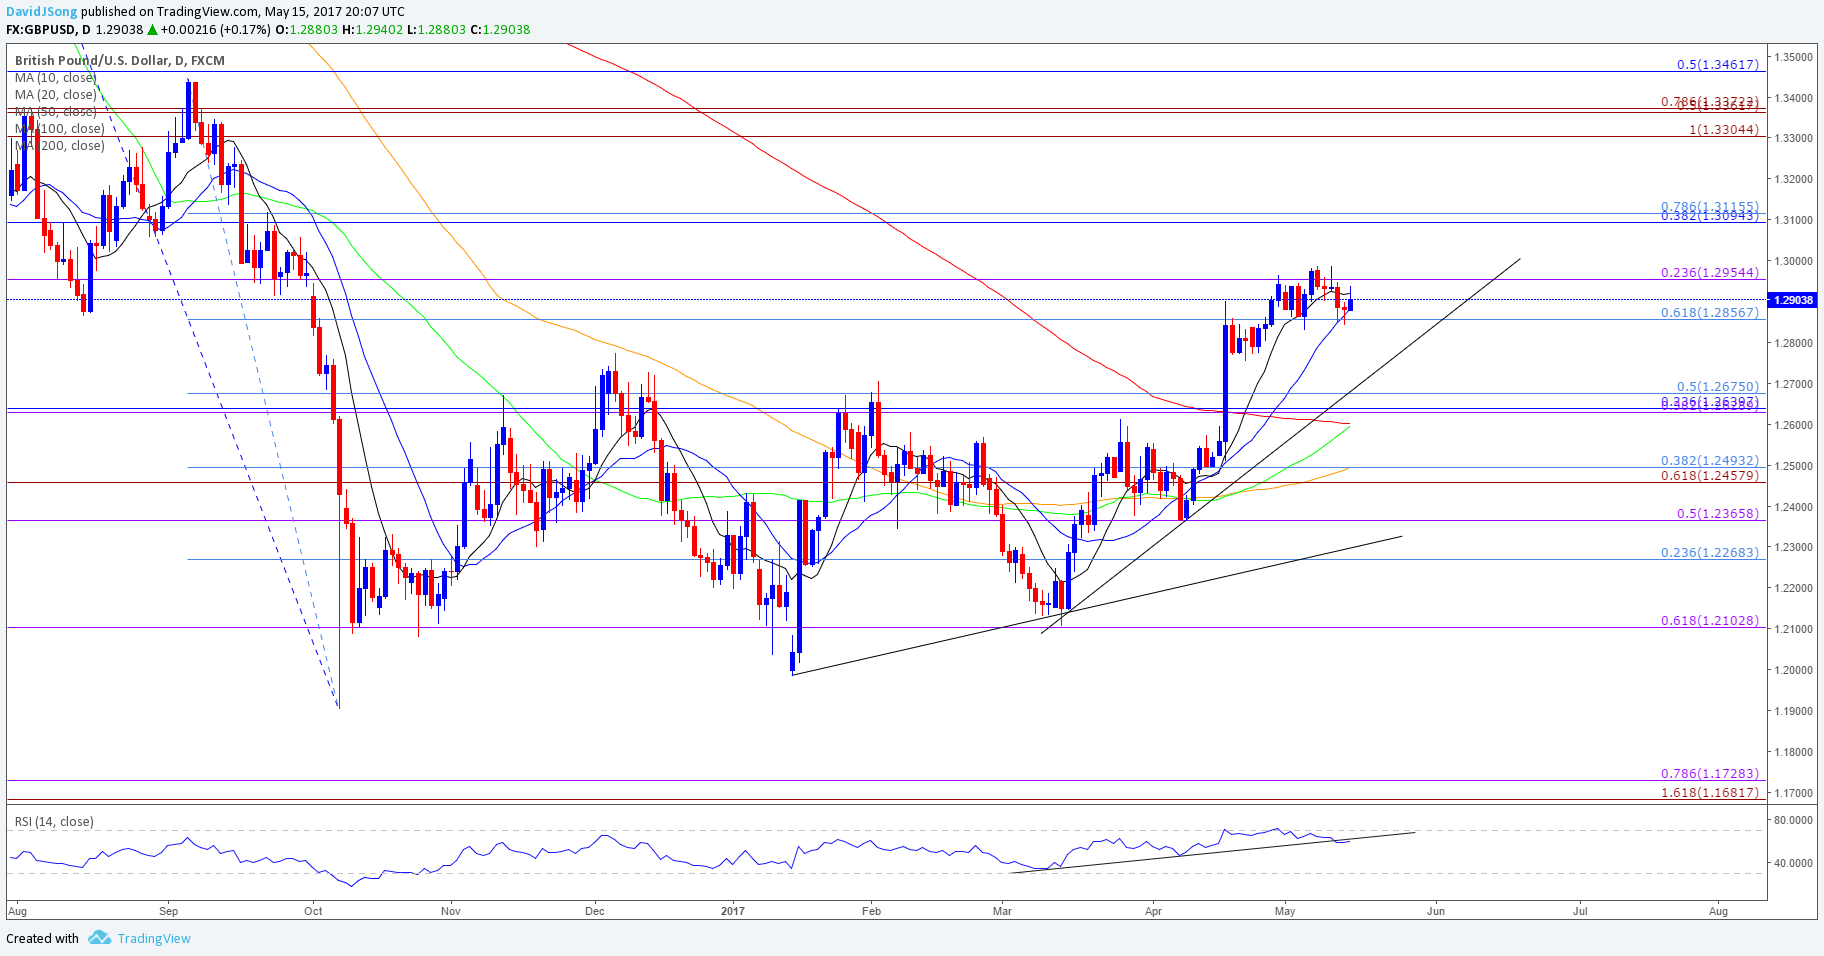 Strong uk cpi report to fuel gbpusd relief rally gbpusd daily chart nvjuhfo Images